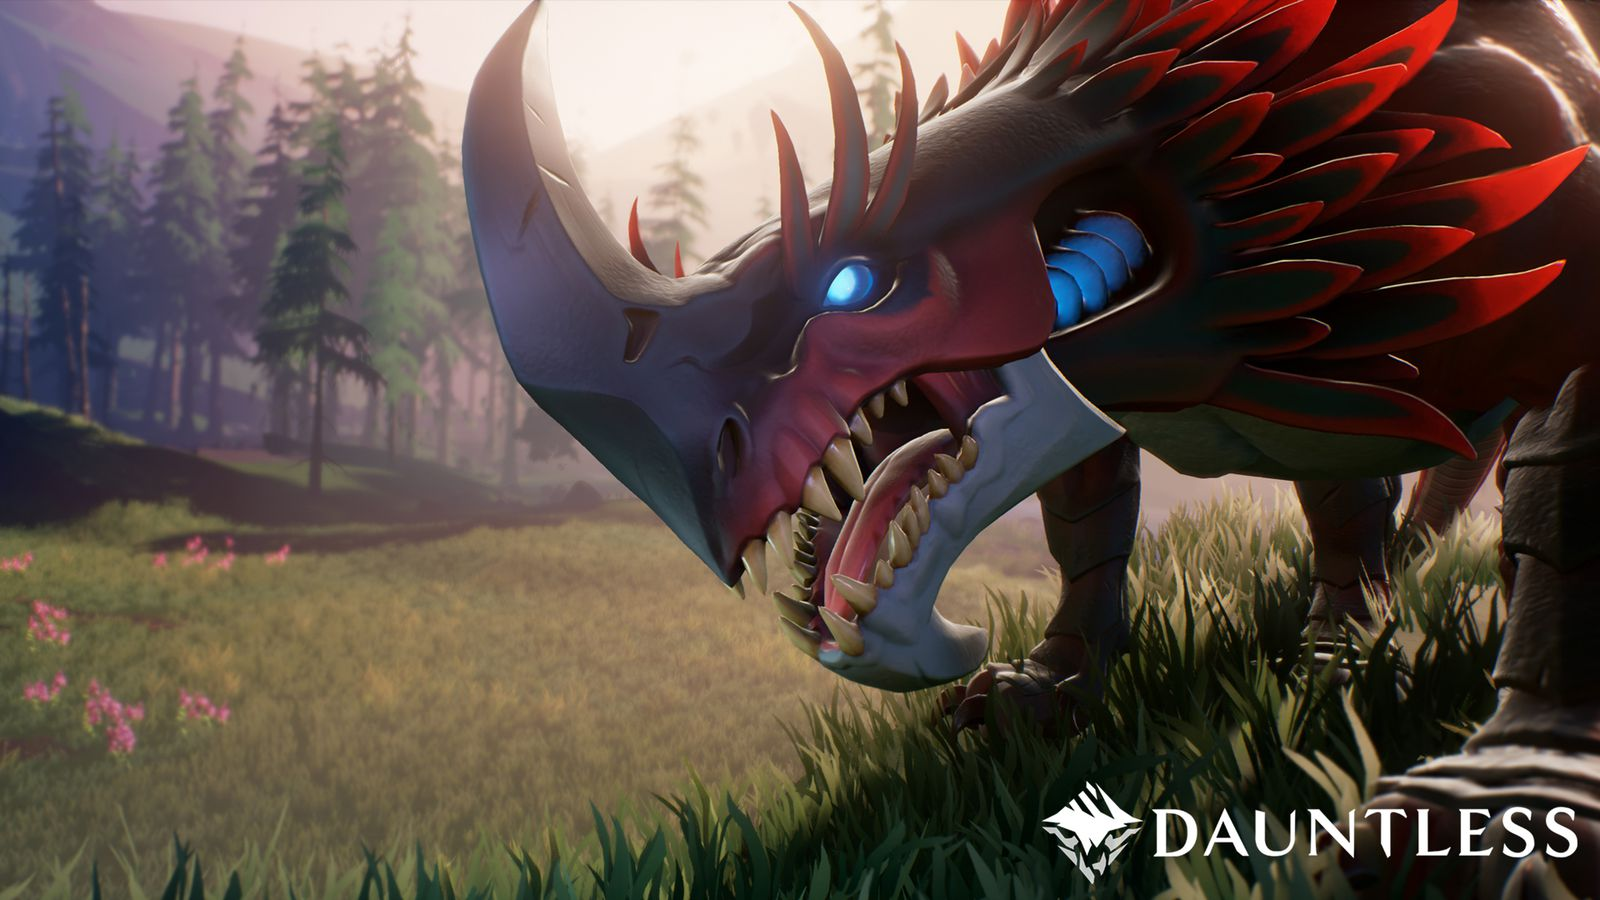 Dauntless is a co-op RPG about hunting magical dinosaurs